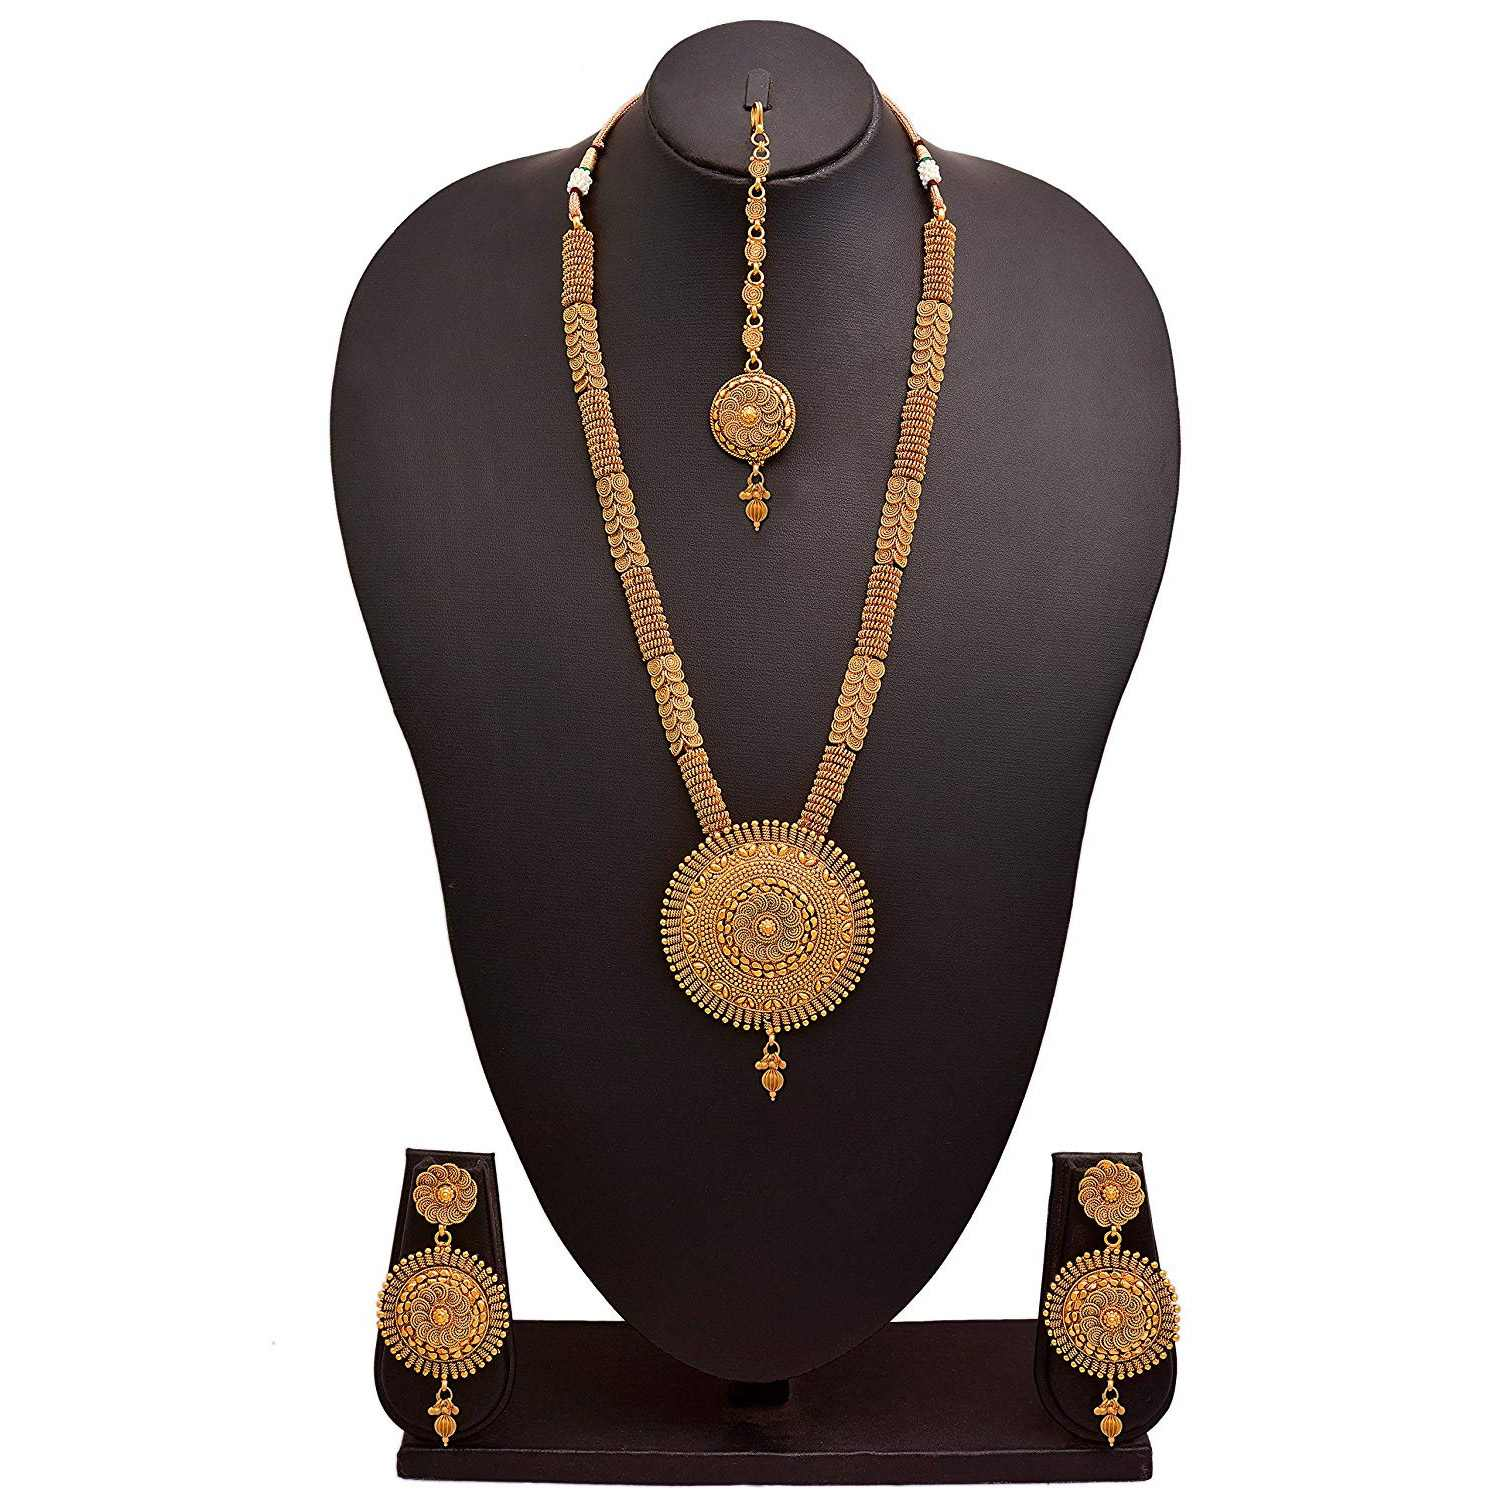 Jfl - Jewellery For Less Traditional Ethnic One Gram Gold Plated Spiral Designer Long Necklace Set With Earrings For Women & Girls.